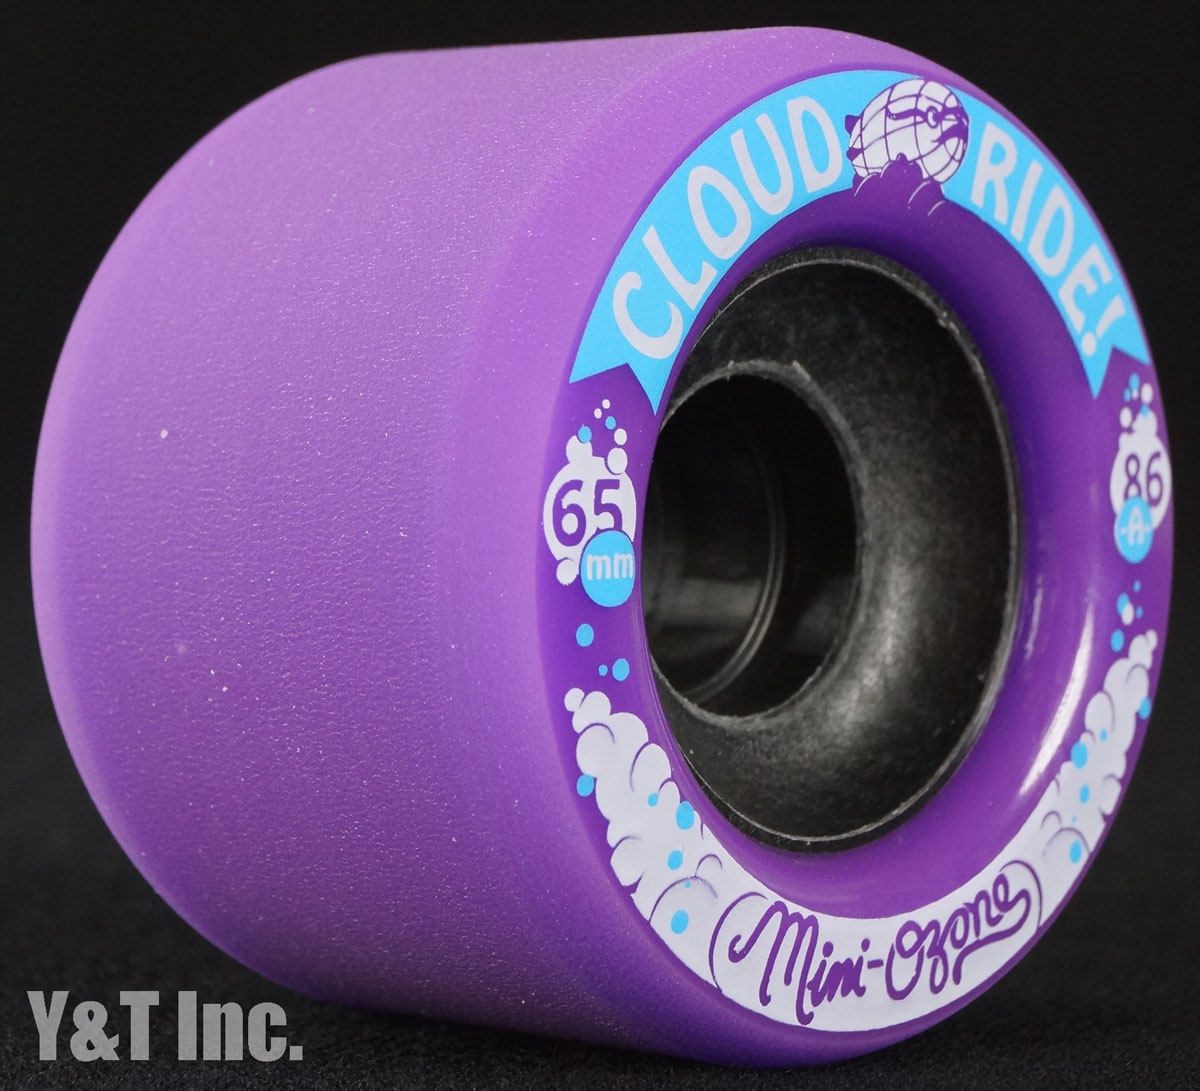 CLOUD RIDE MINI OZONE 65mm 86a 1